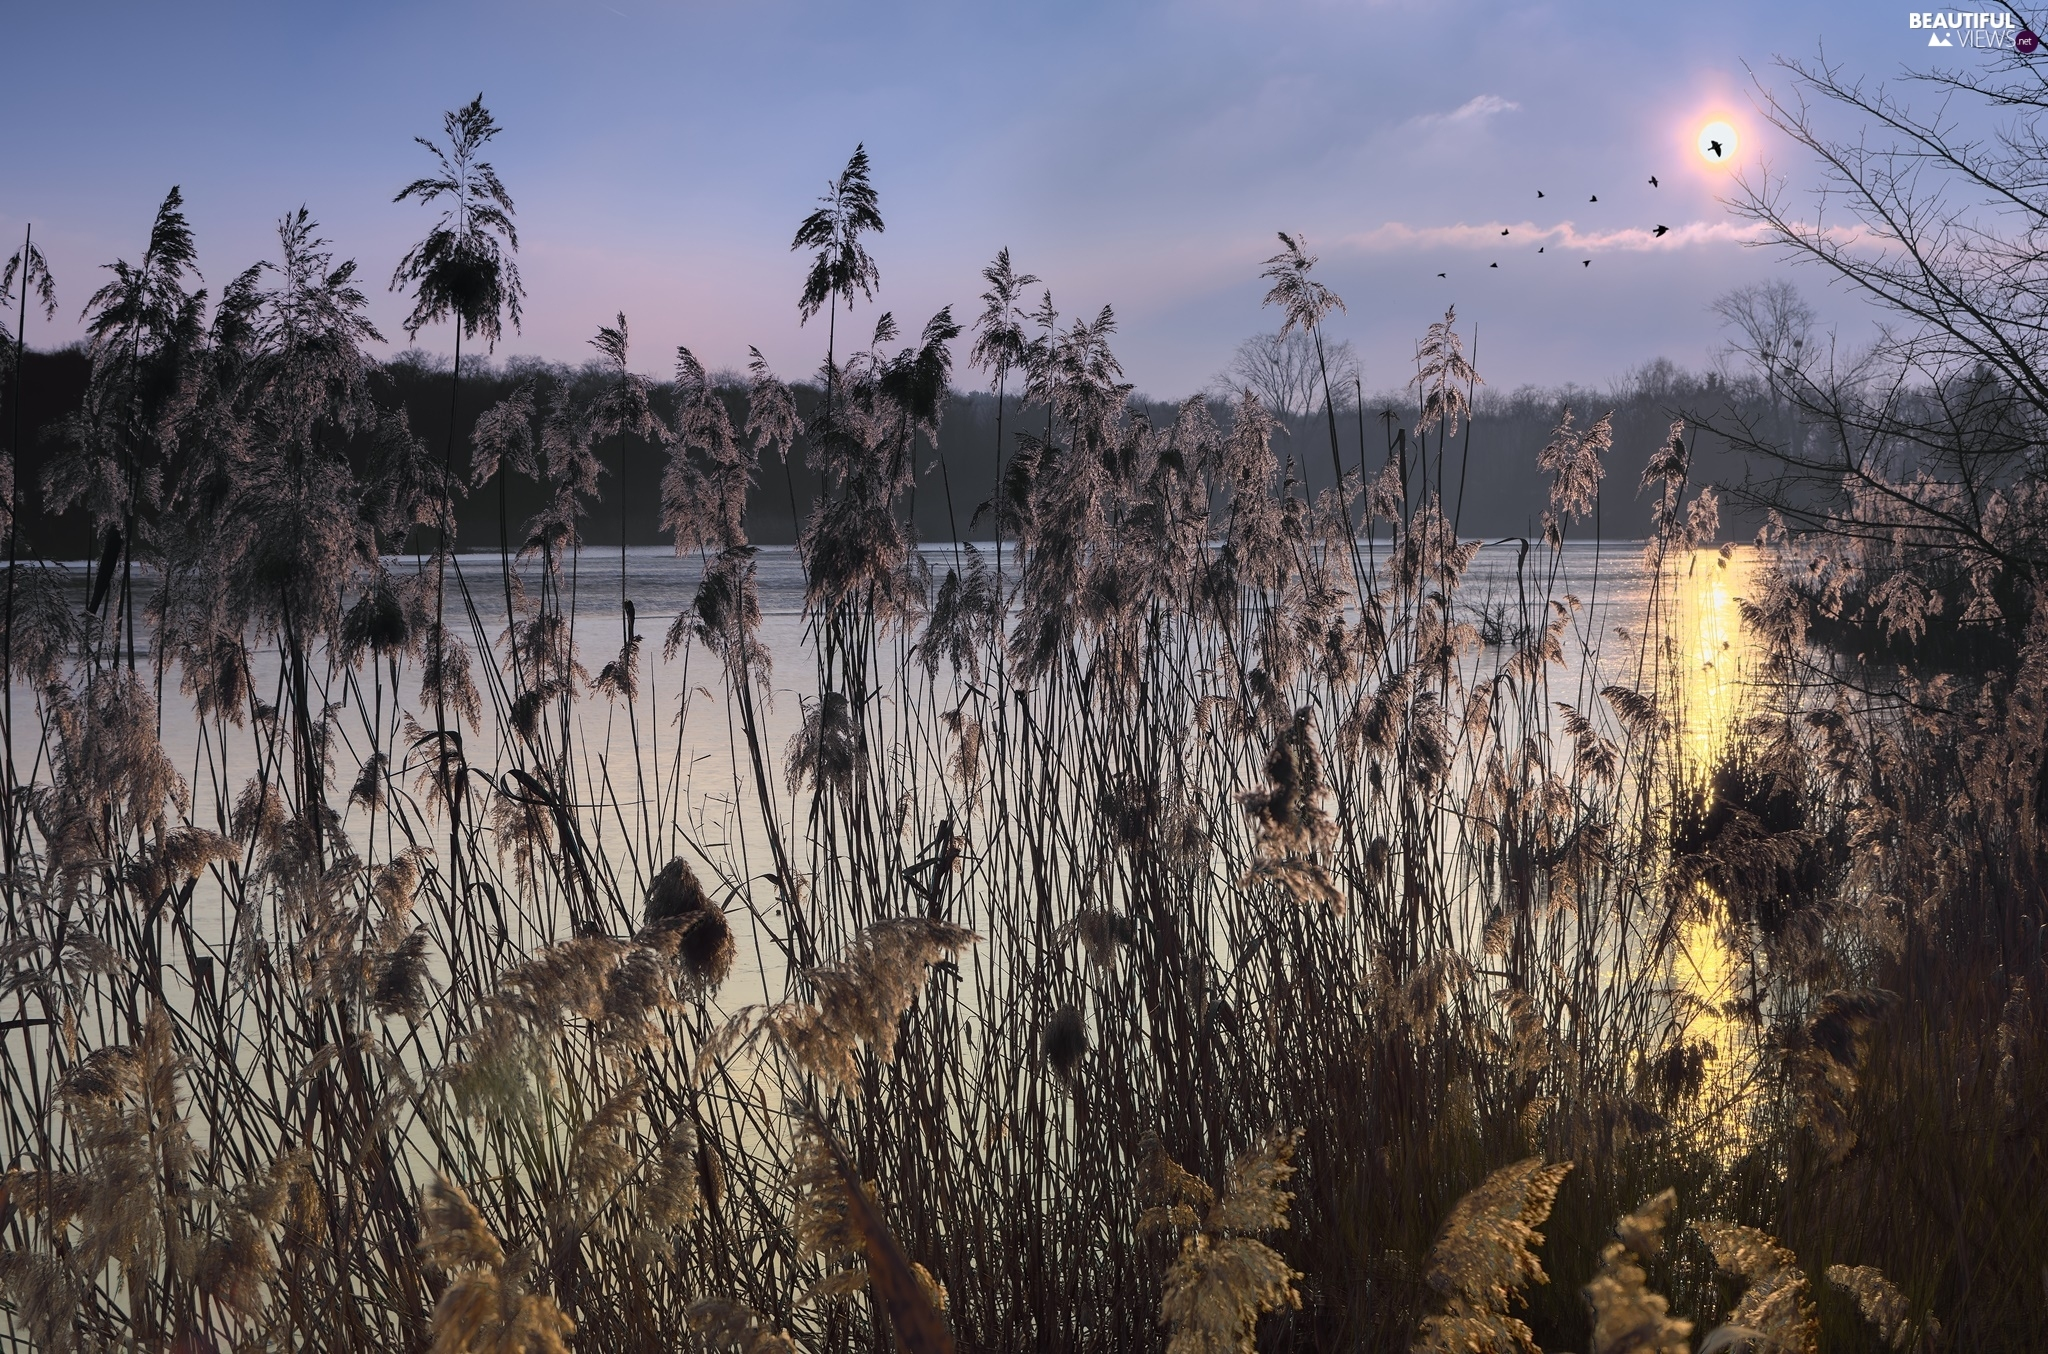 grass, Sunrise, lake, birds, cane